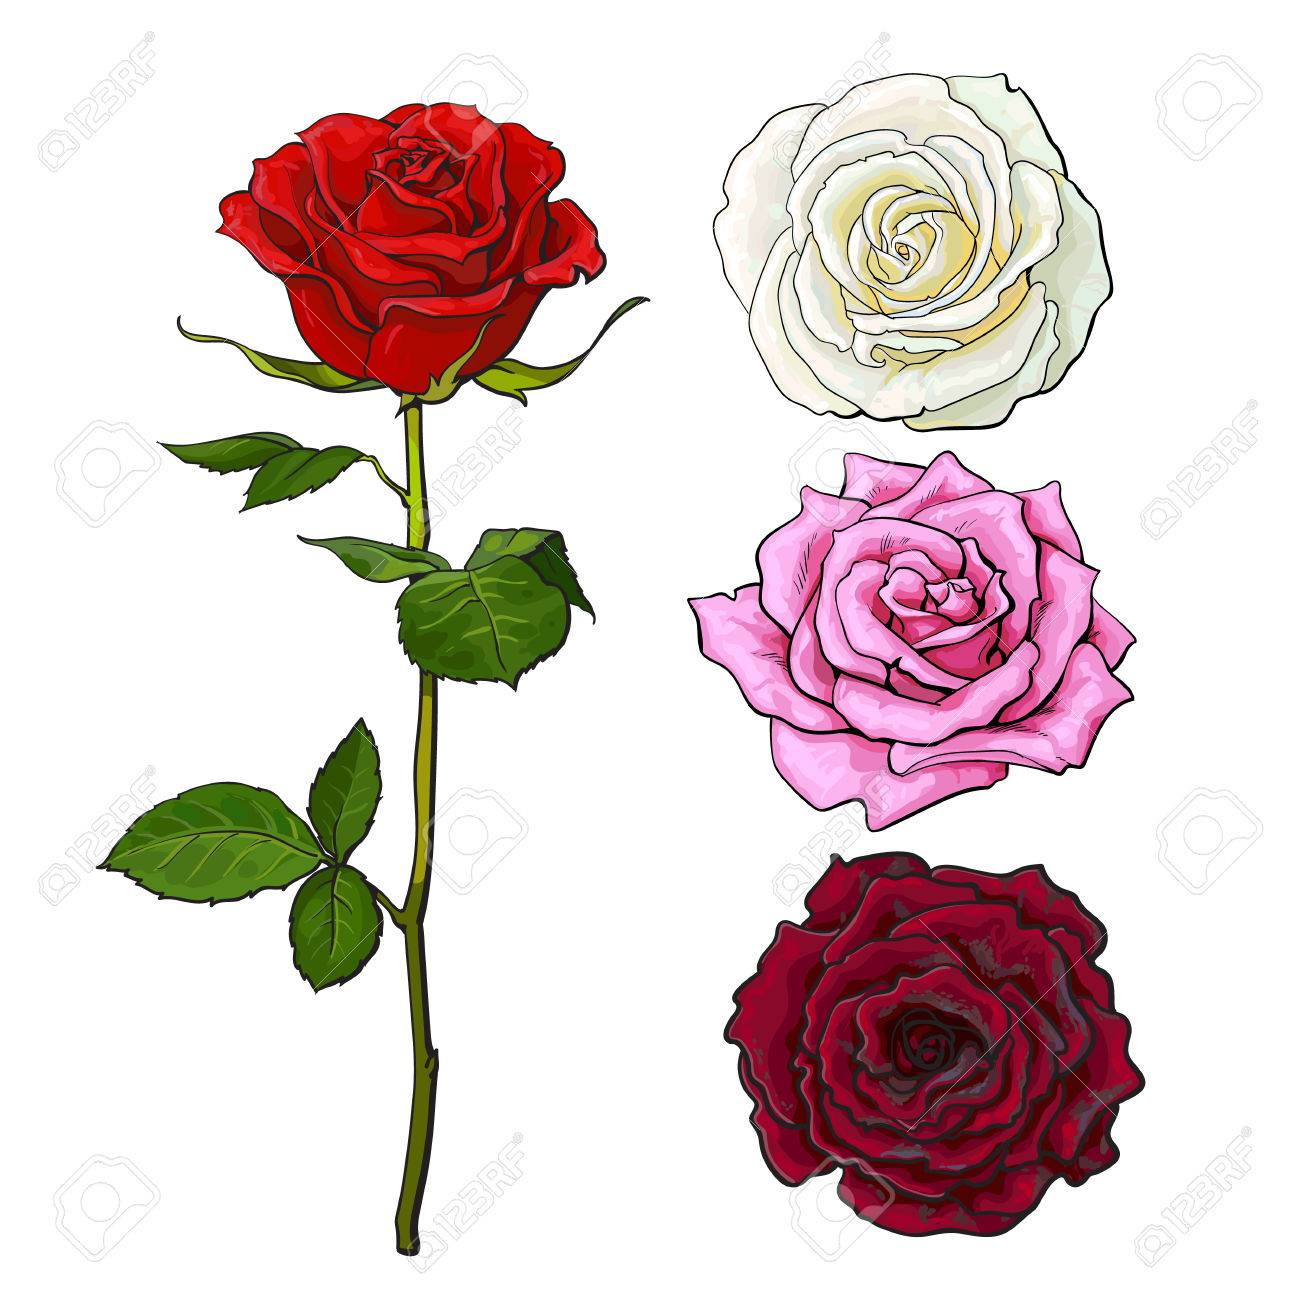 1300x1300 Pink, White, Deep Red Open Rose Bud And Flower With Green Leaves